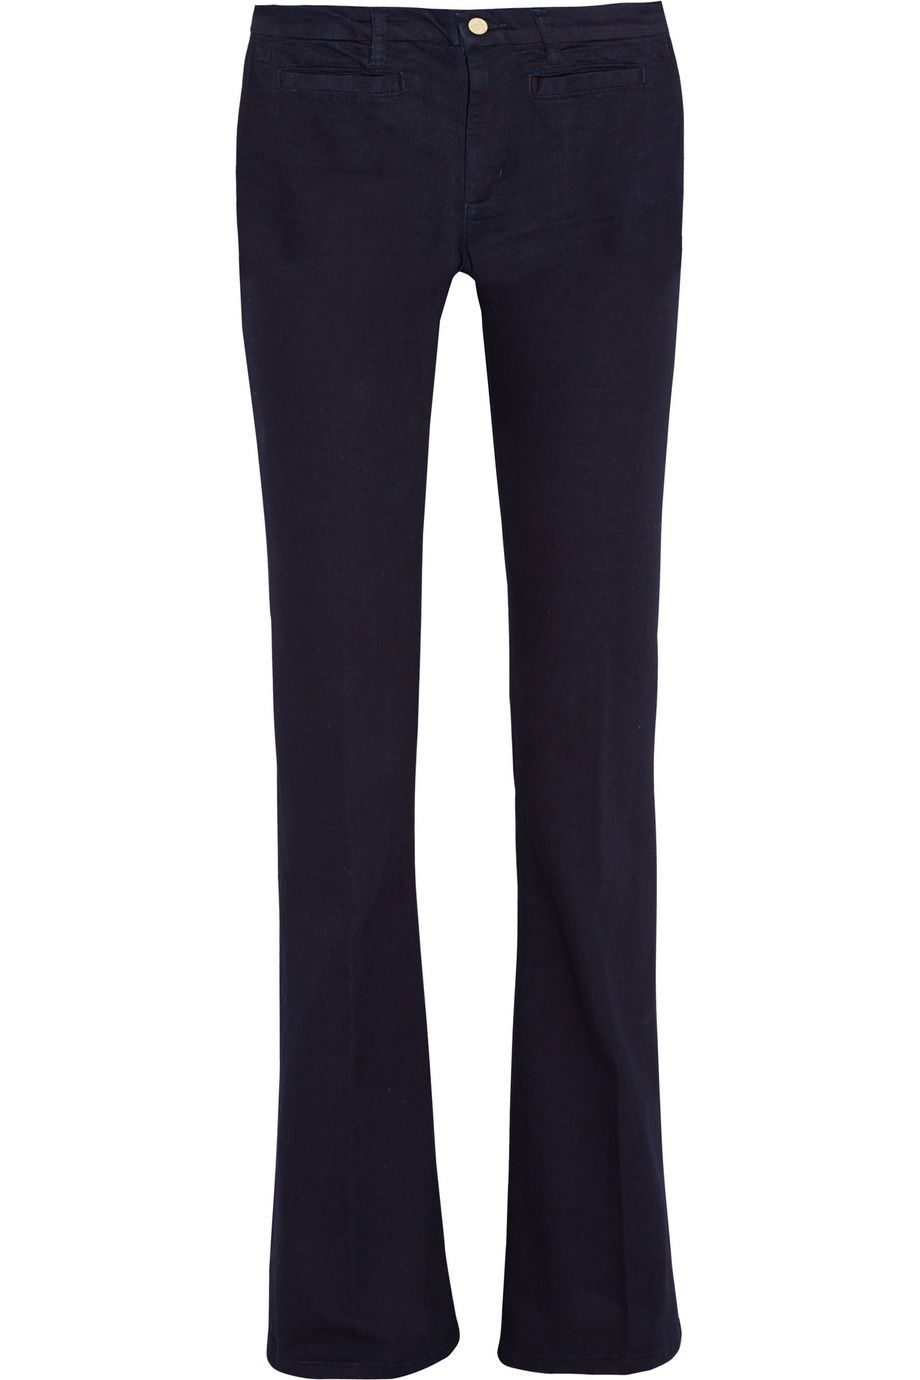 "<p>MIH Jeans Marrakesh Jeans, $89; <a href=""http://www.theoutnet.com/en-US/product/MiH-Jeans/M..."">theoutnet.com</a> </p>"